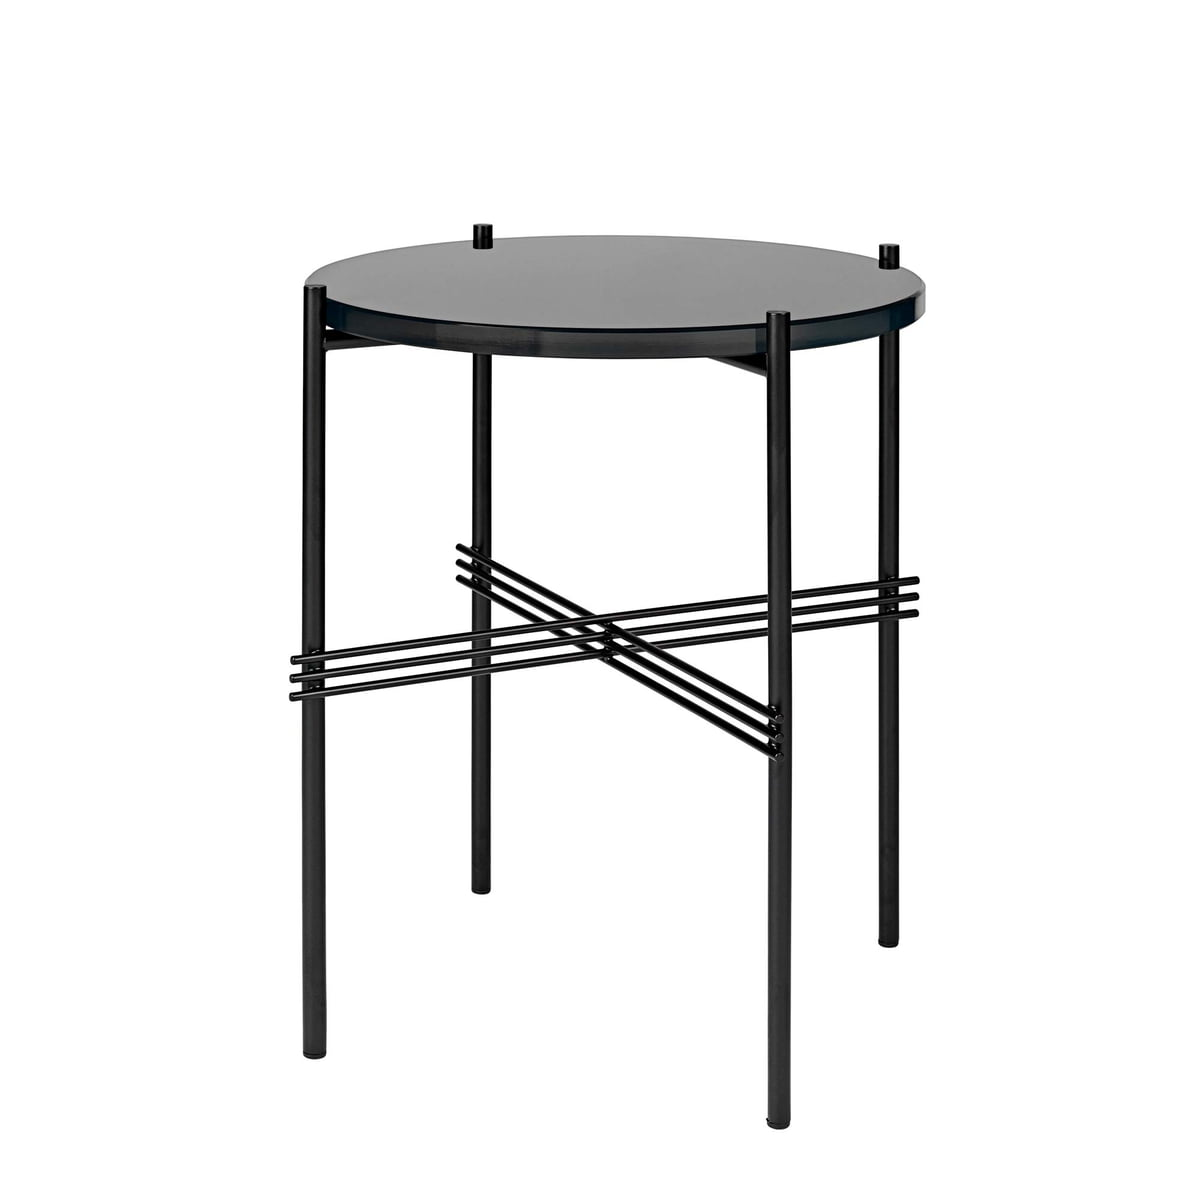 TS Coffee Table Ø 40 Cm In Black / Black Glass